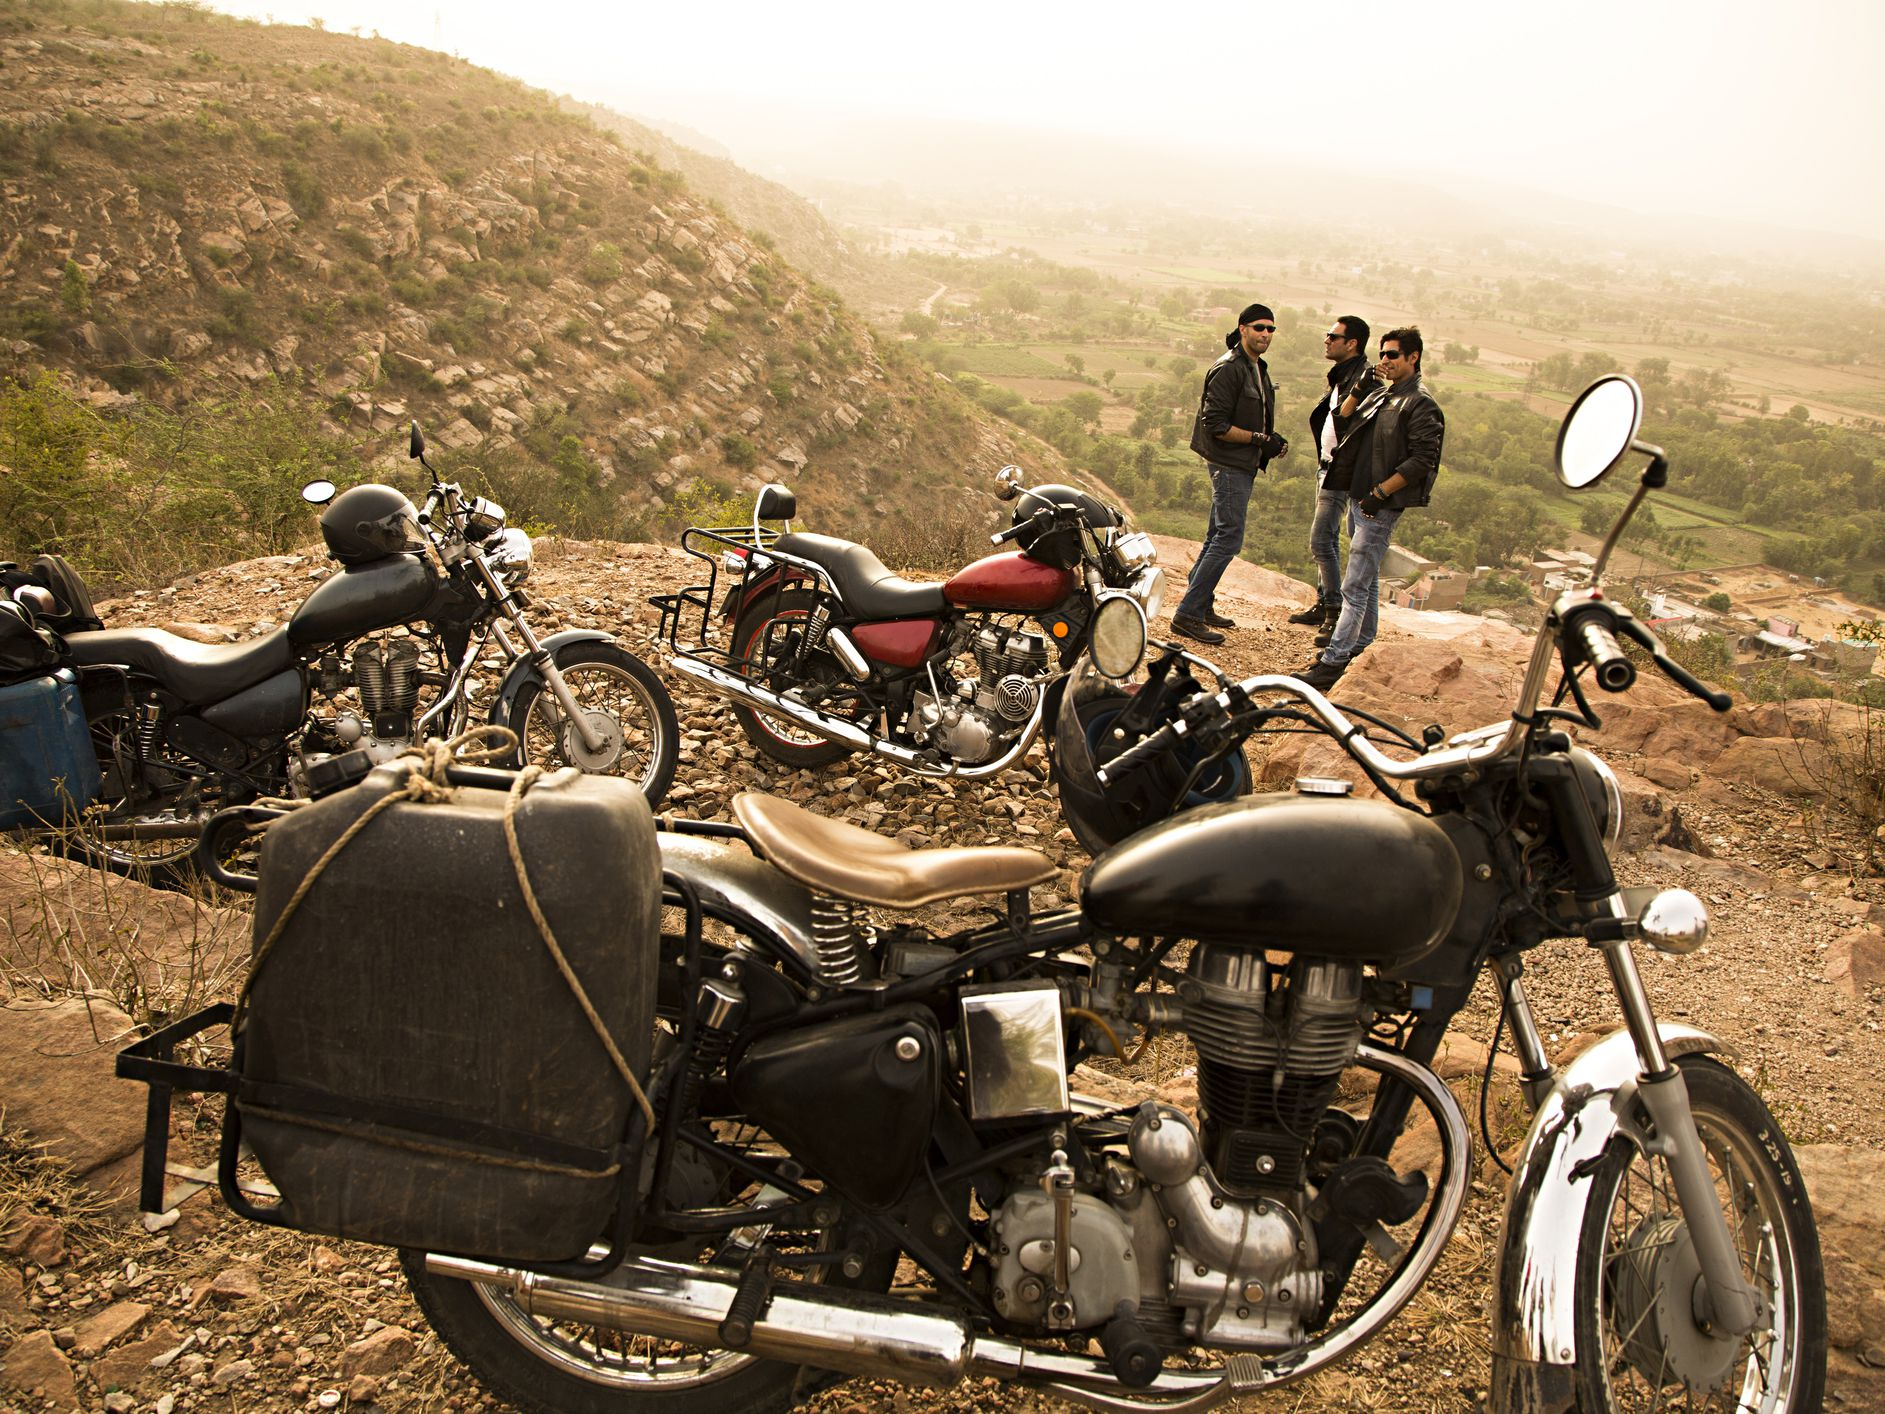 6 Top India Motorcycle Tour Destinations and Tours